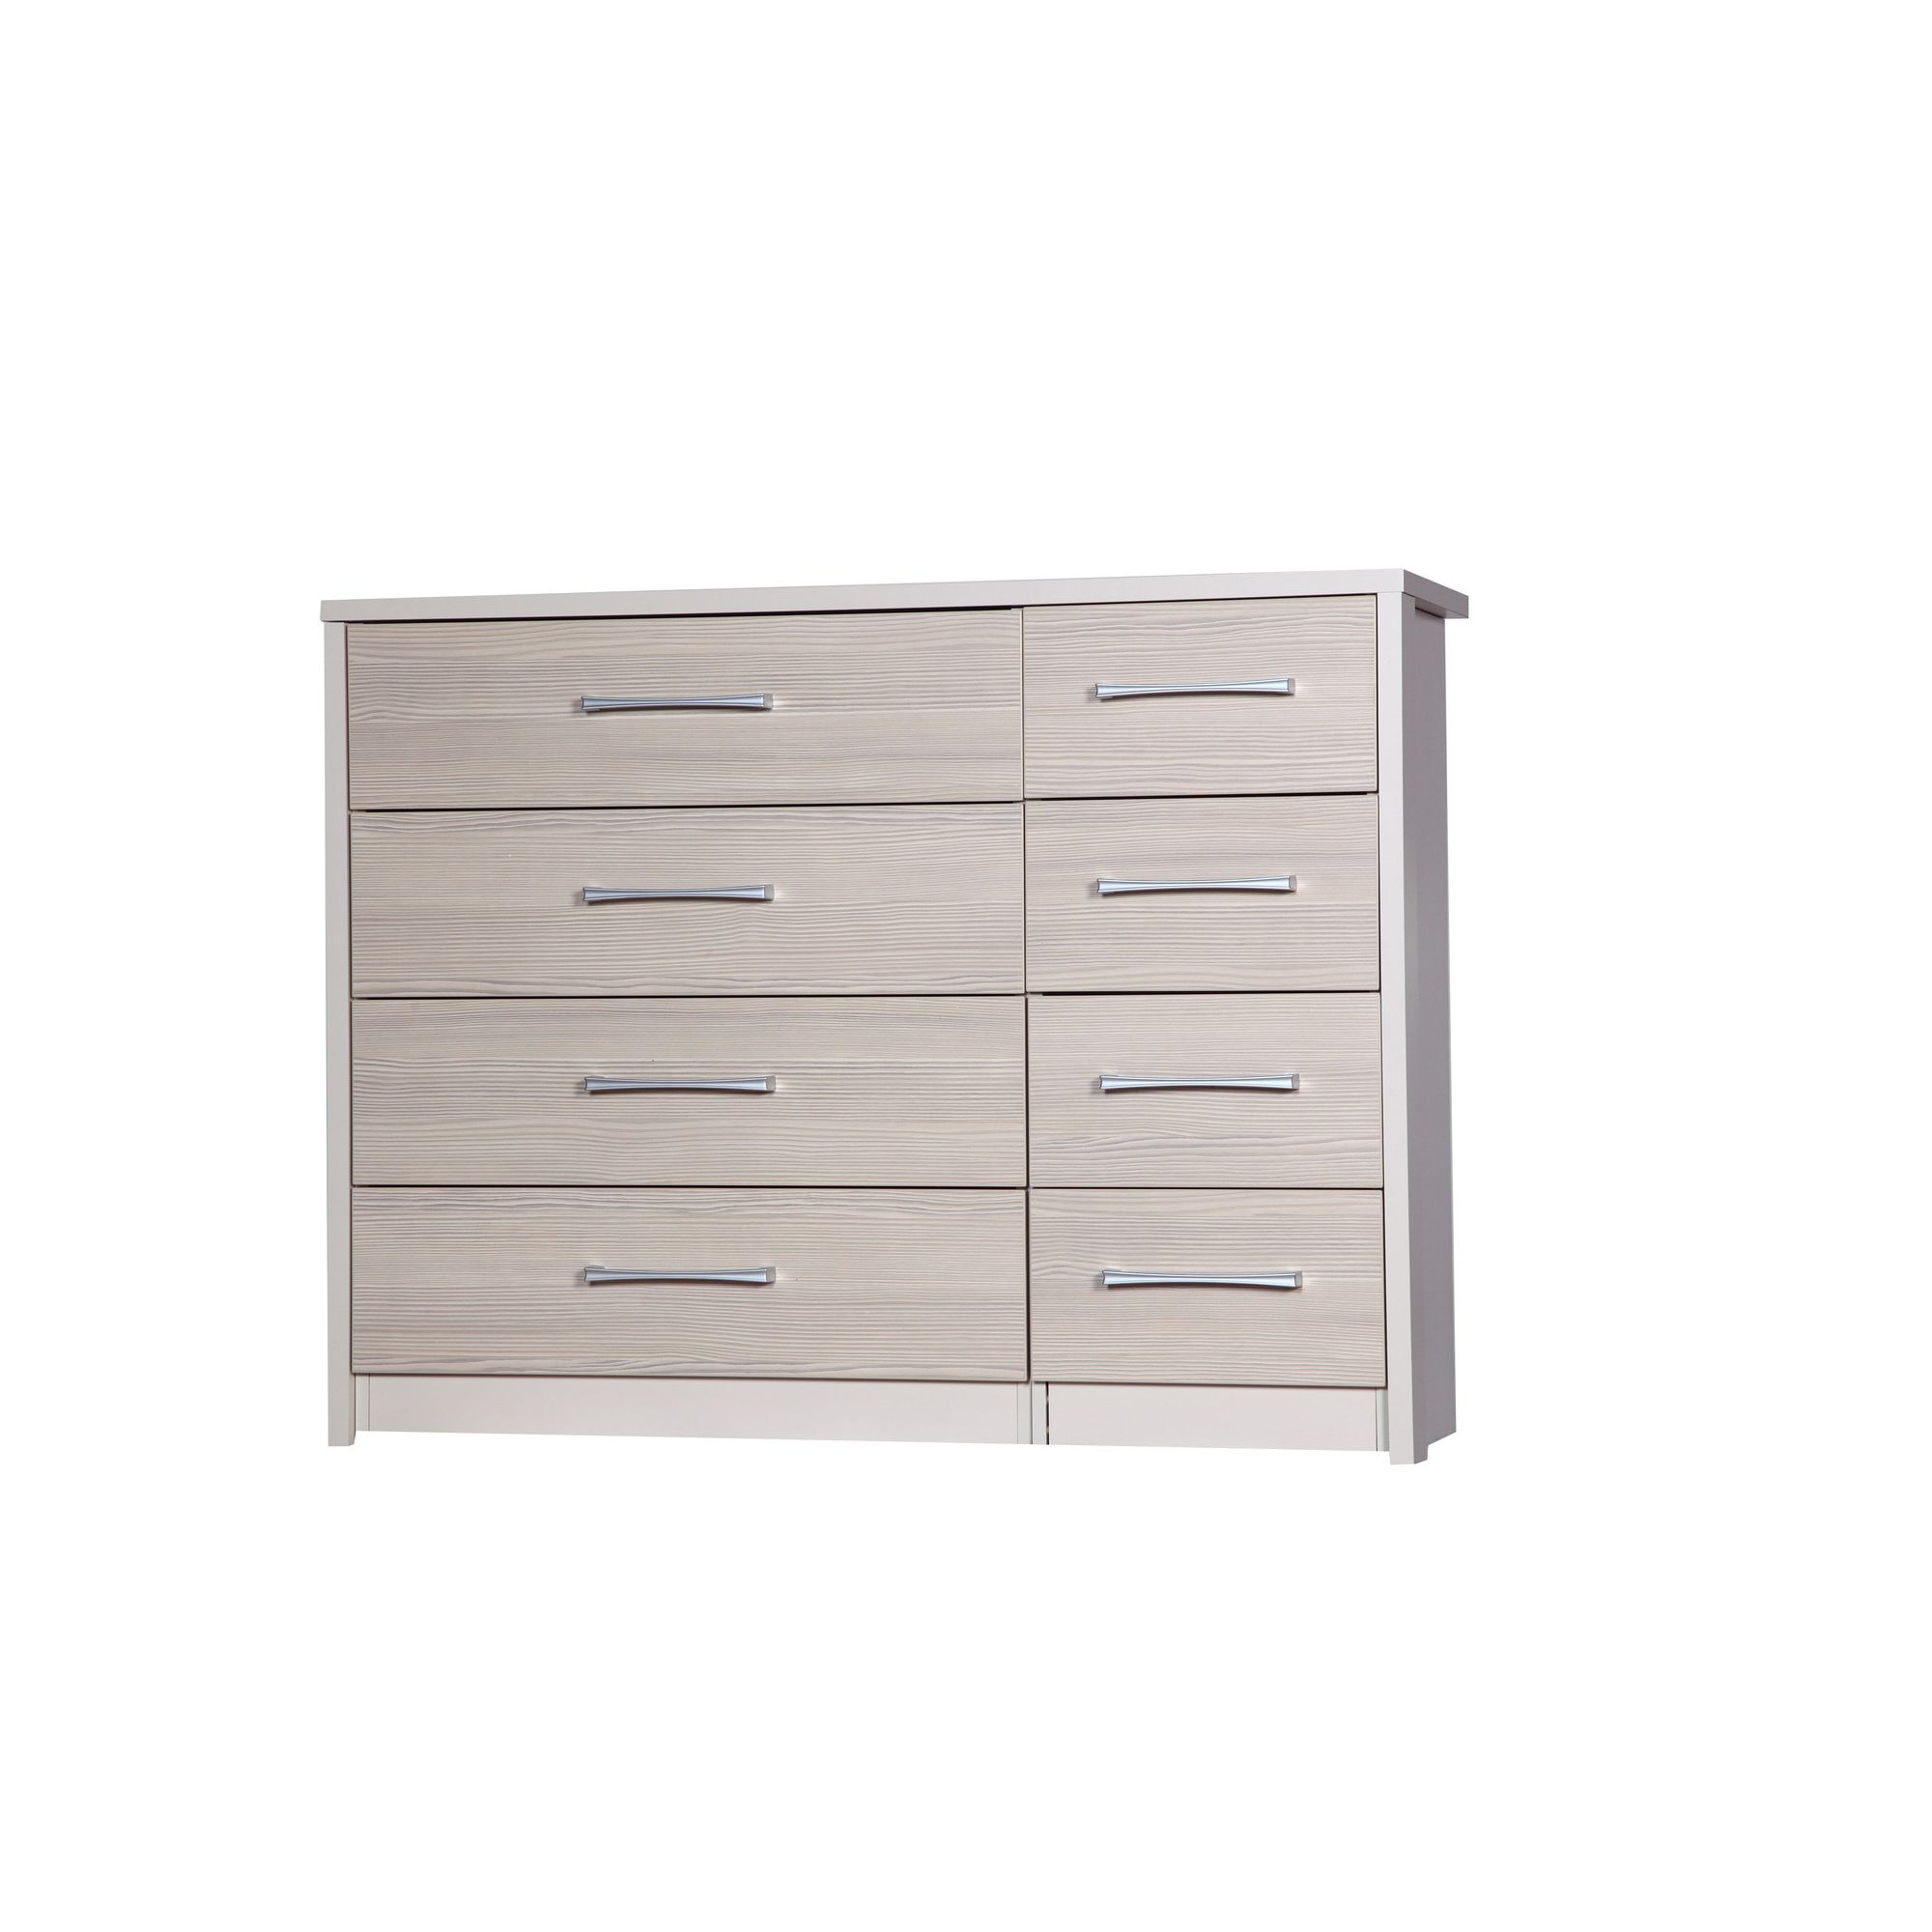 Alto Furniture Avola 8 Drawer Double Chest - Cream Carcass With Champagne Avola at Tescos Direct